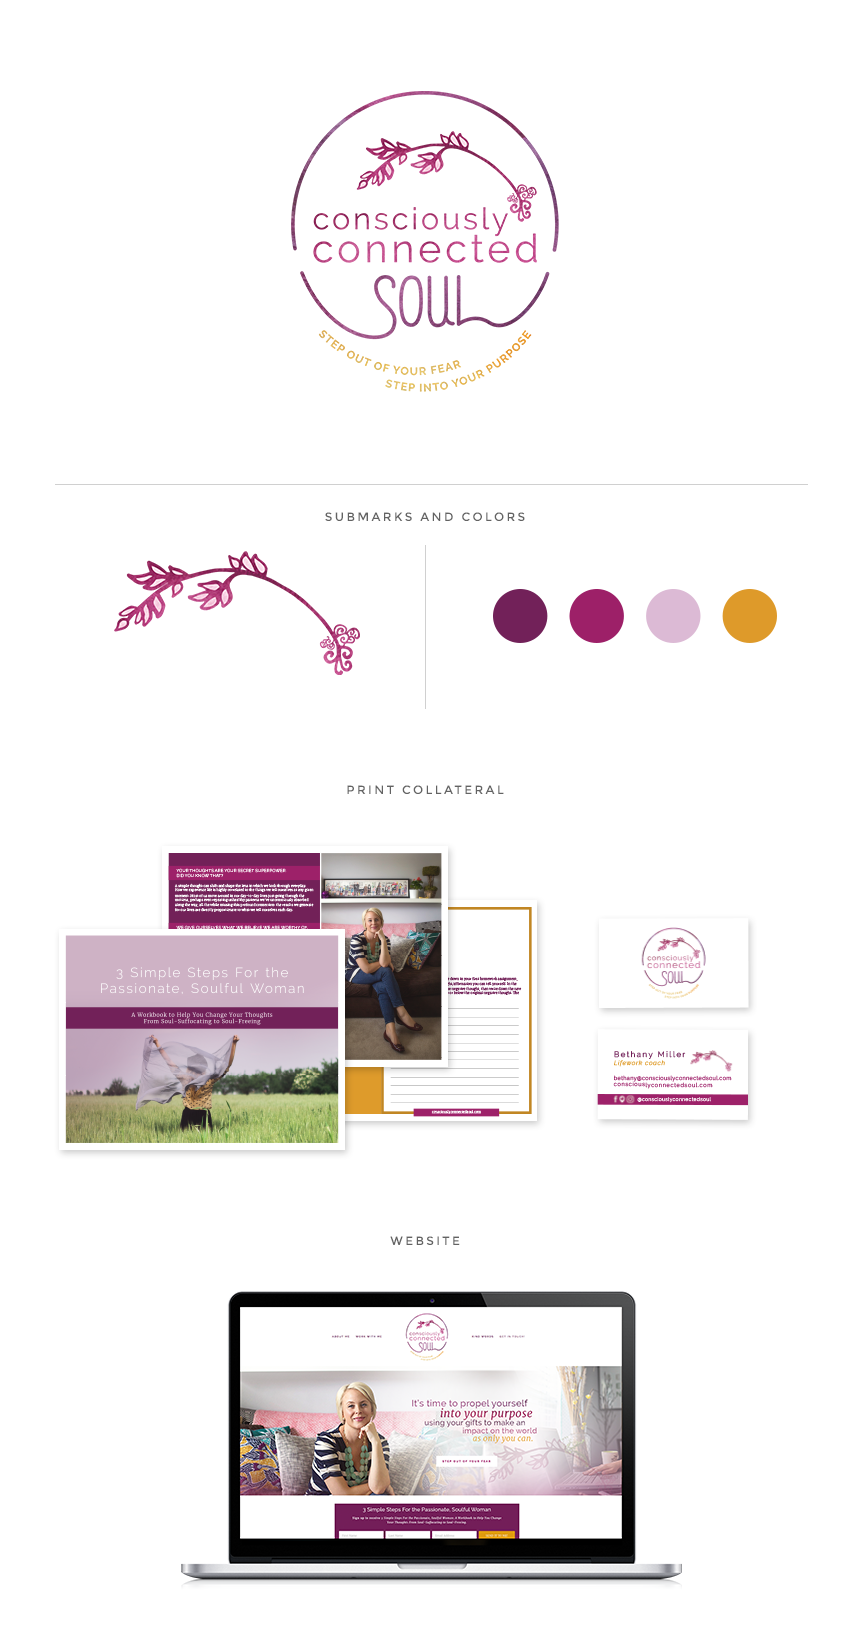 Consciously Connected Soul brand, graphic design by Finicky Designs